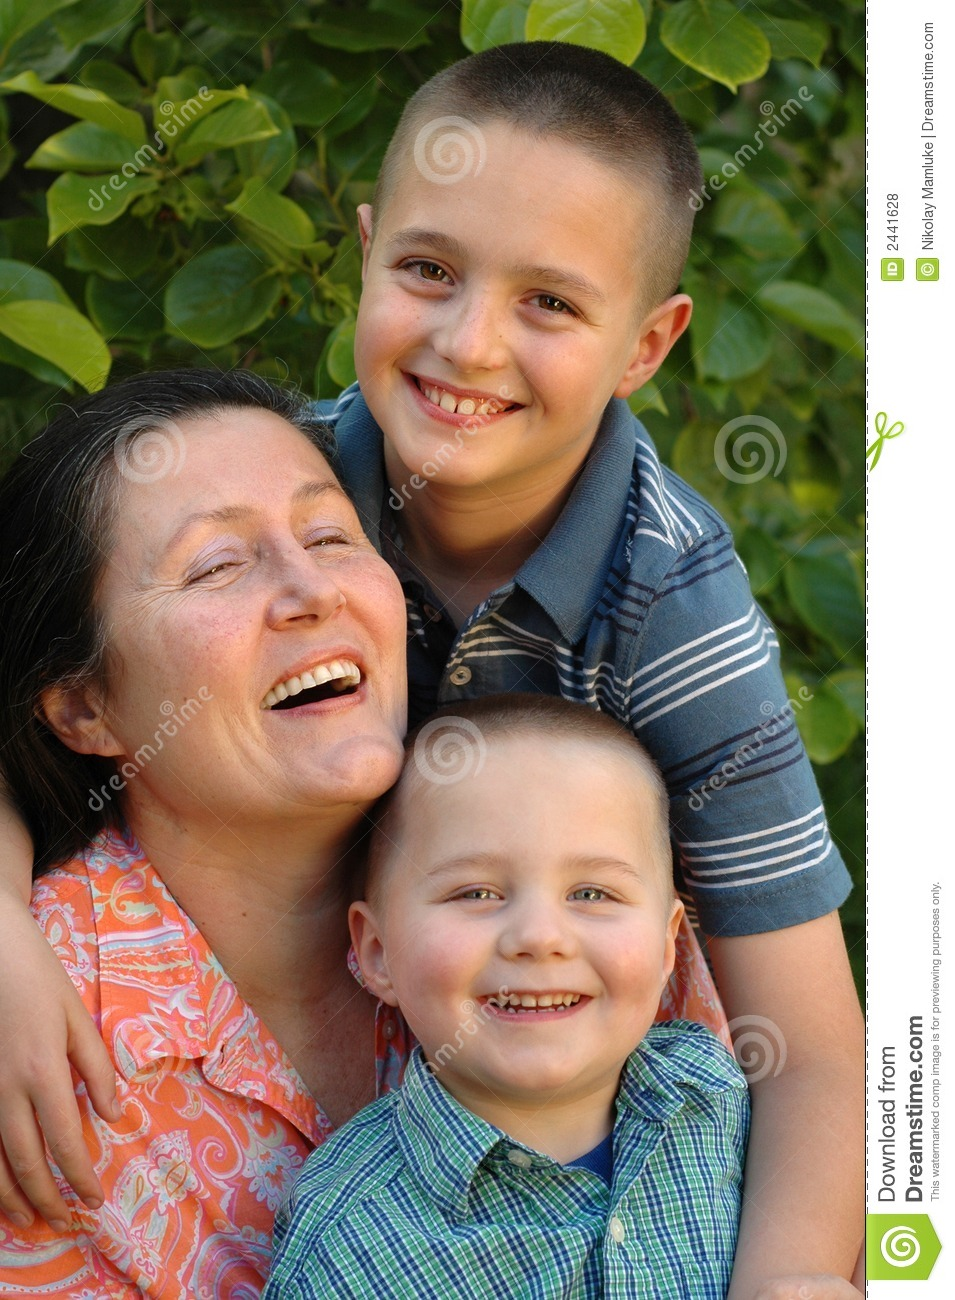 grandmother dating her grandson Here is the heartwarming story of 72-year-old pearl carter, her lover and grandson phil bailey, and the $54,000 surrogate mother they have impregnated sorry, did i.